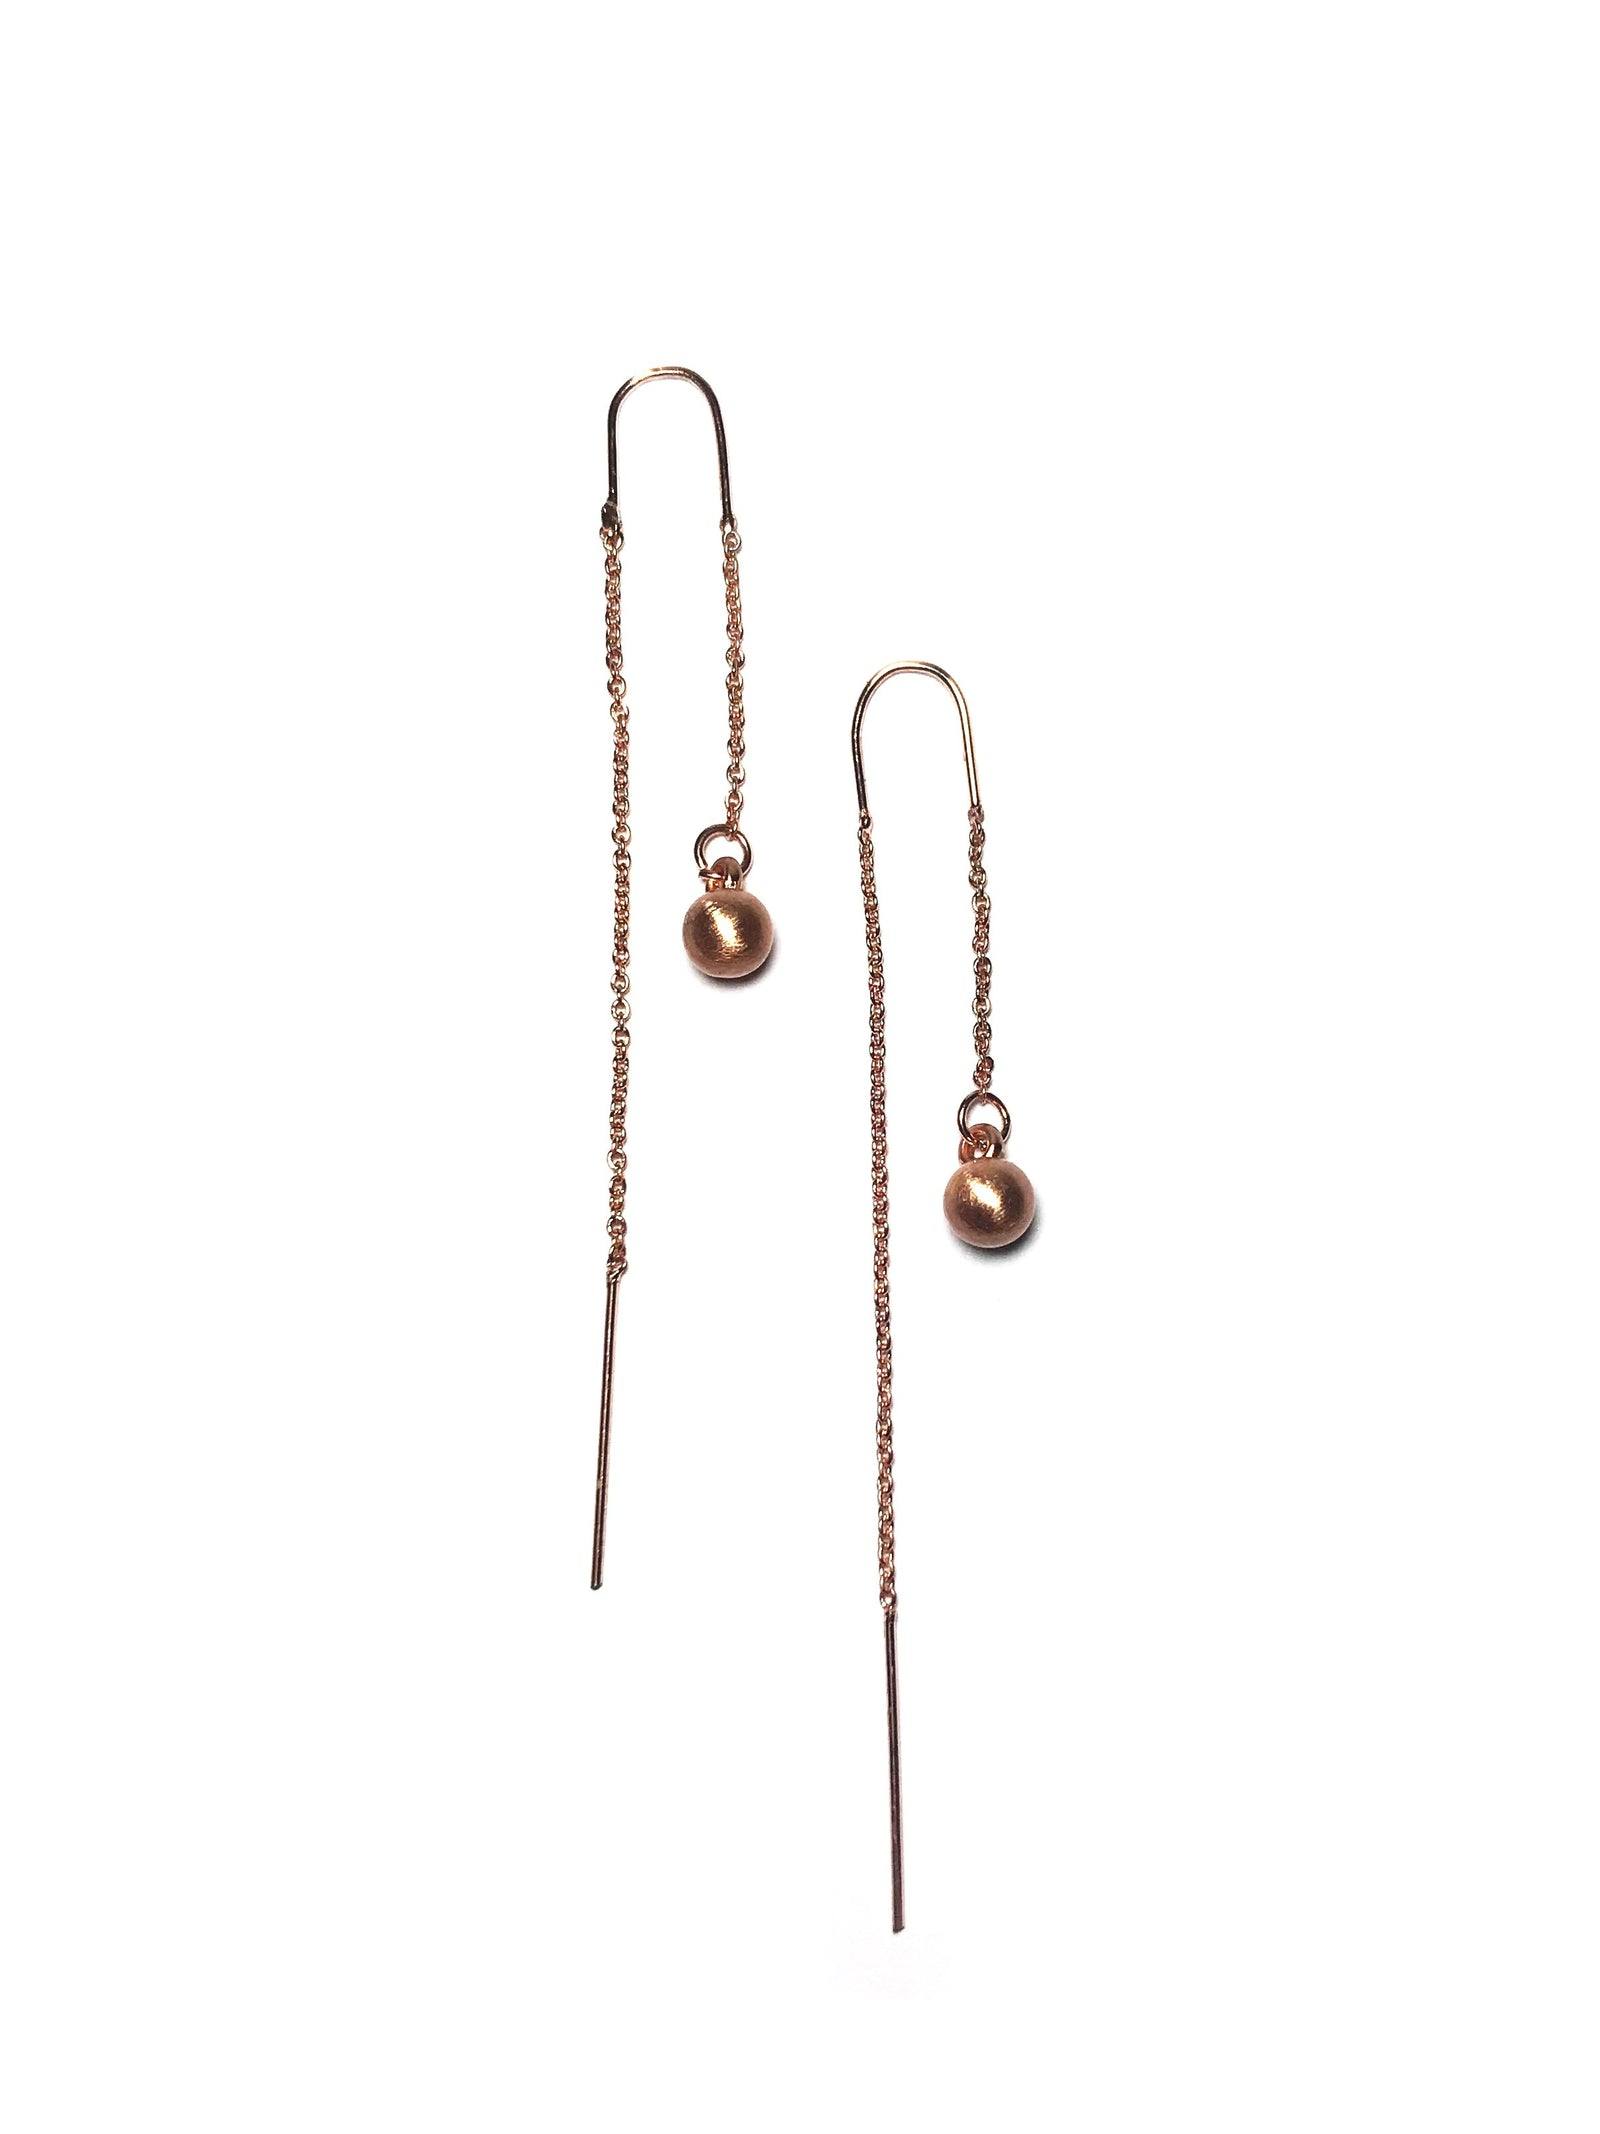 Front and Back Drop Earrings - Mott and Prince